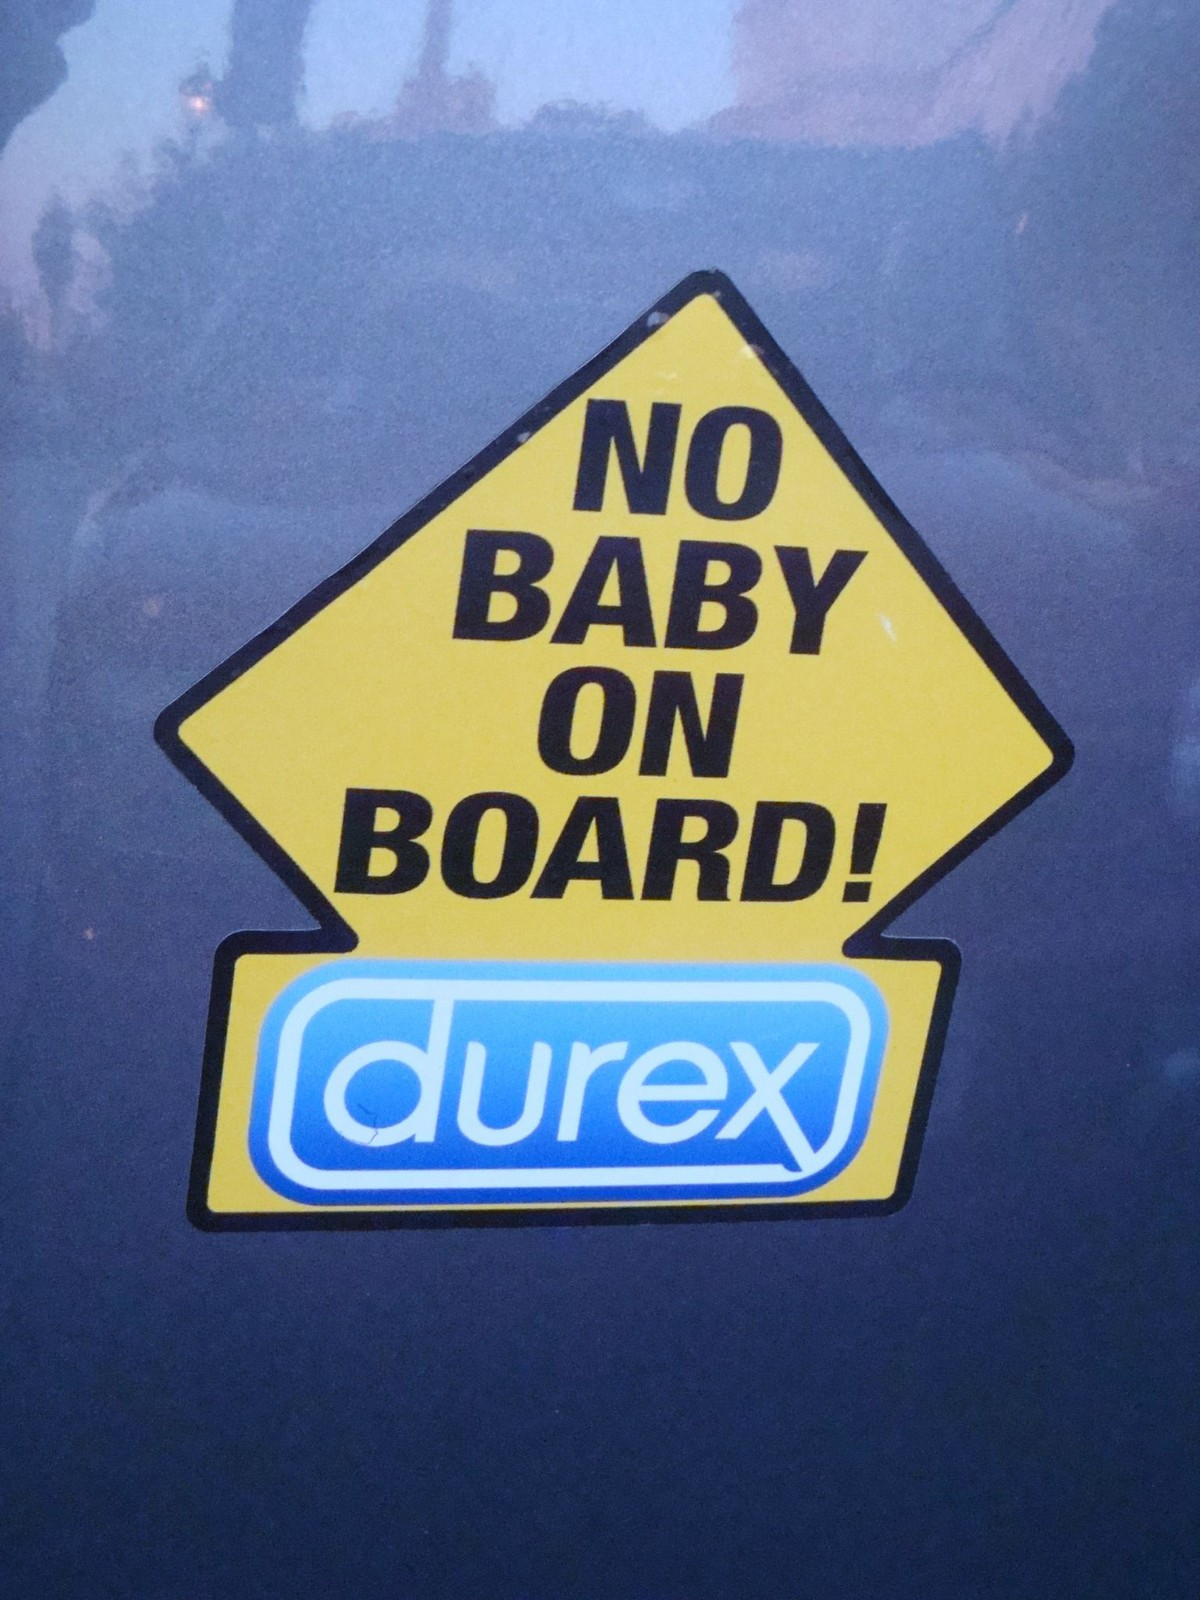 27 Funny Bumper Stickers - That's one way to do it.